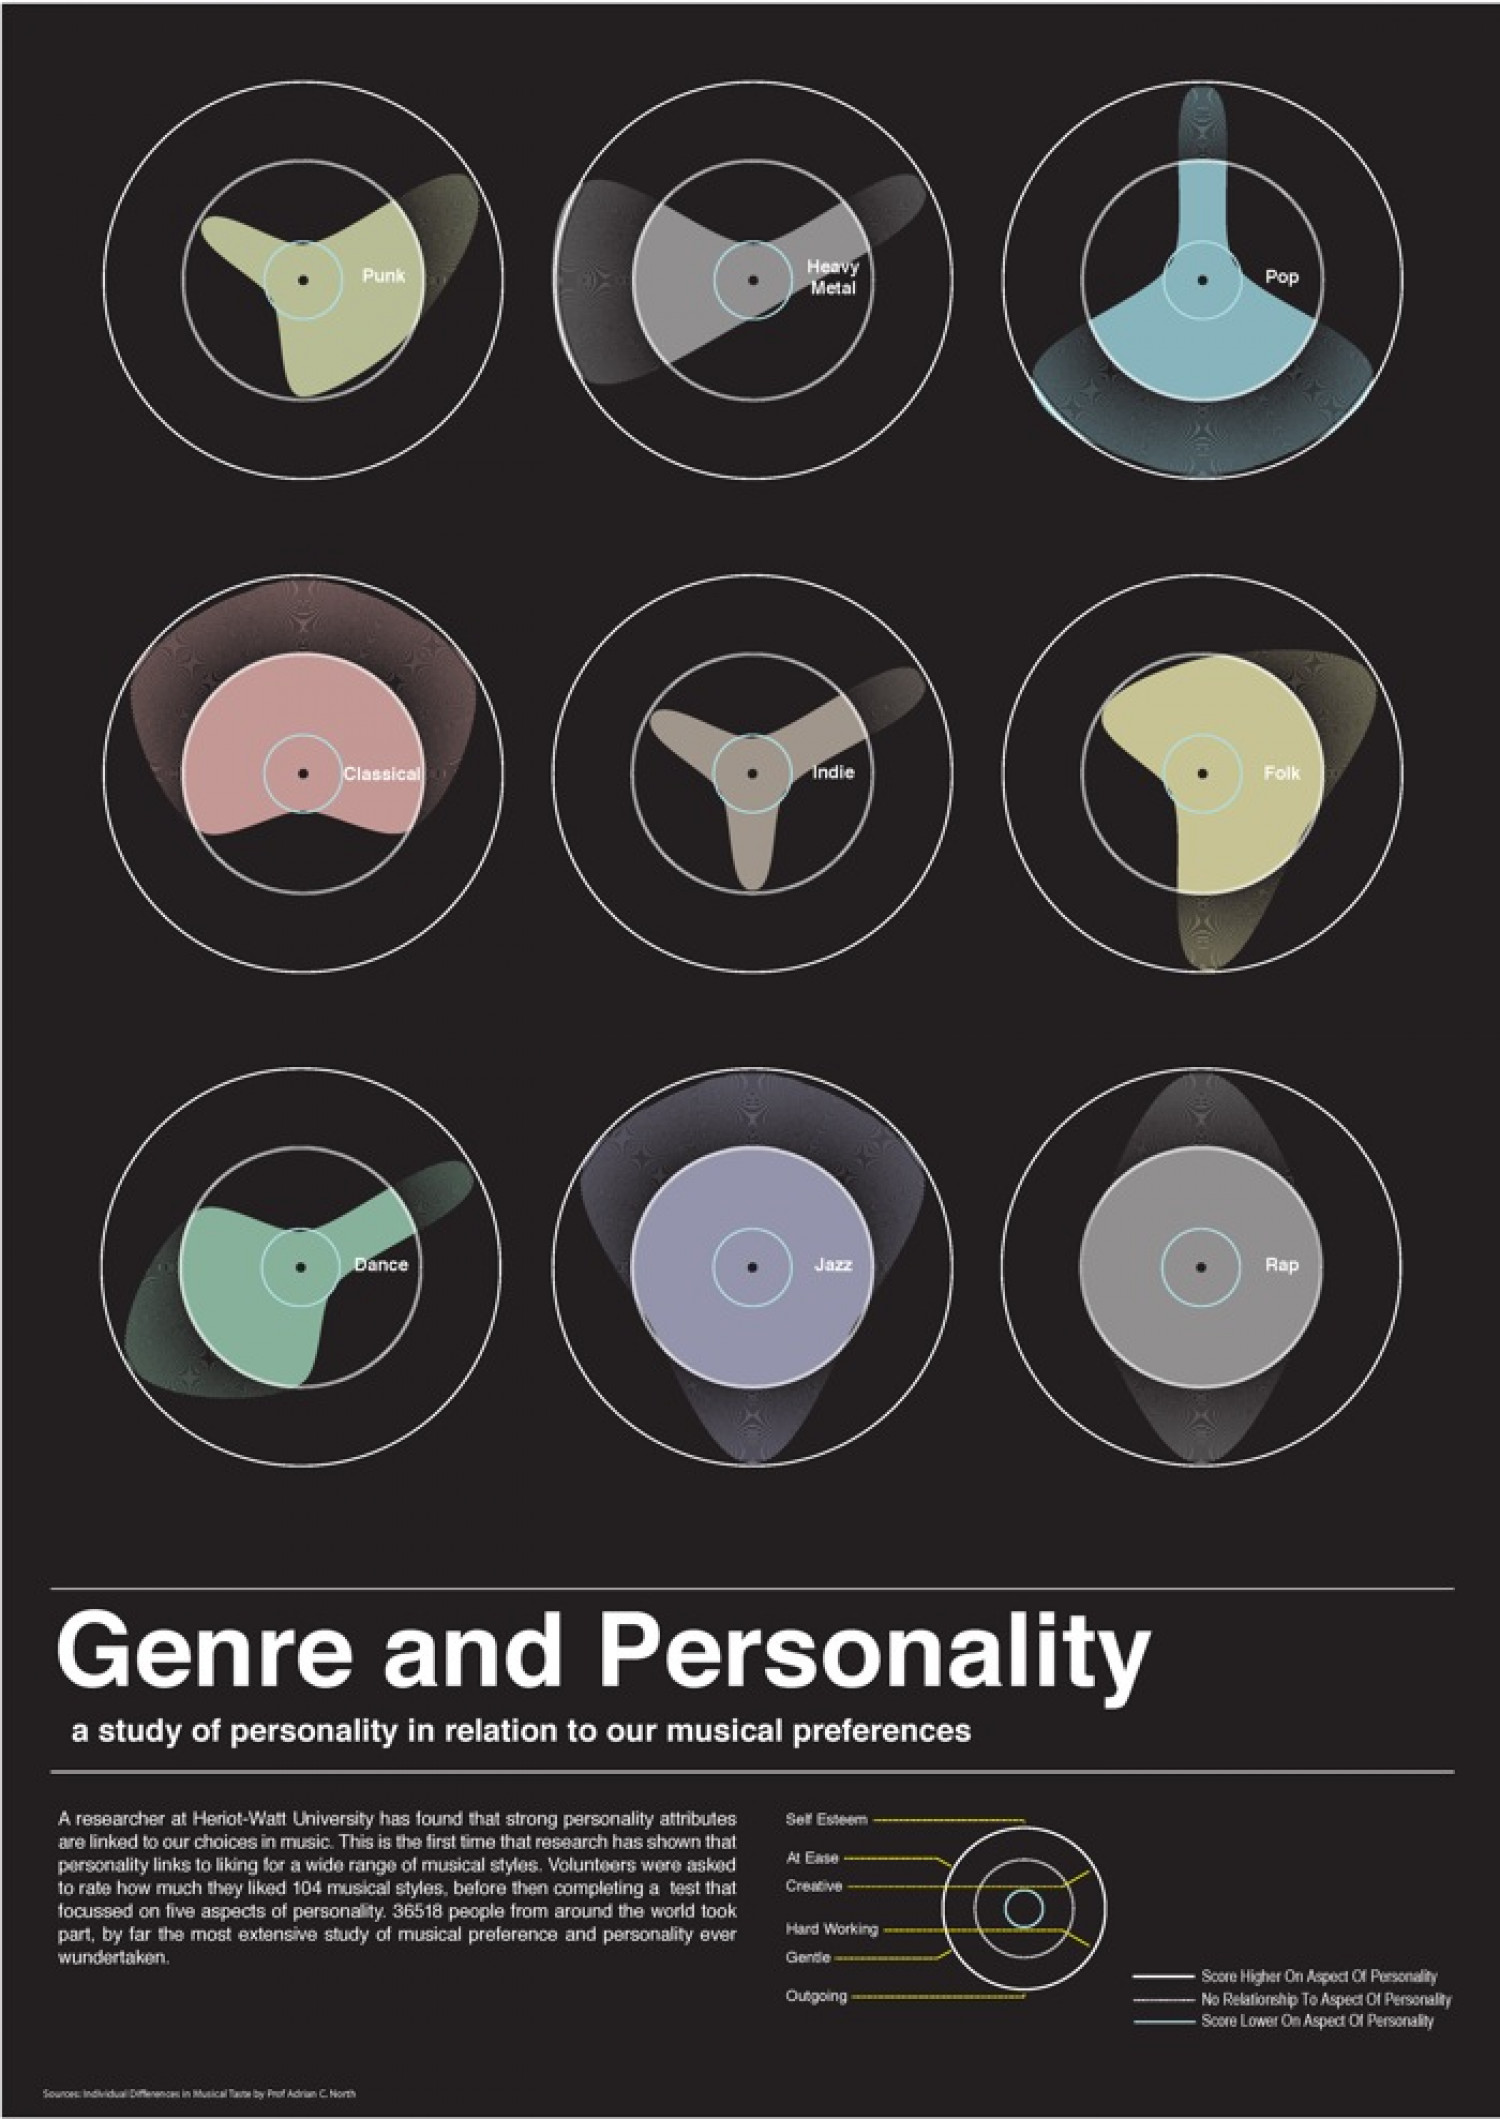 Music Genre and Personality Infographic